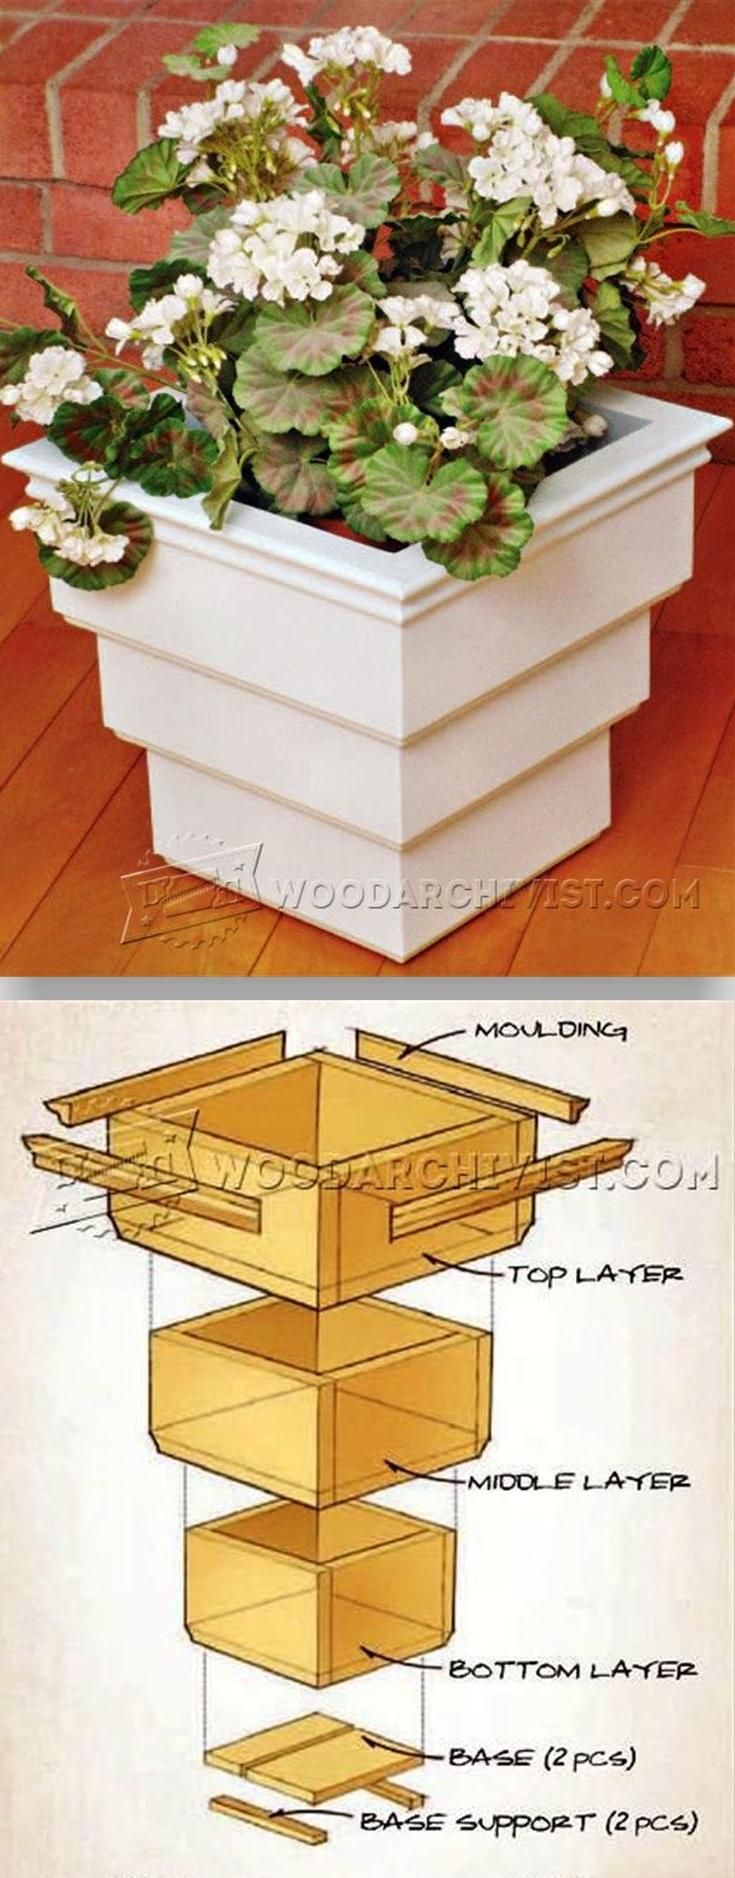 Gallery Of Patio Planter Box Plans